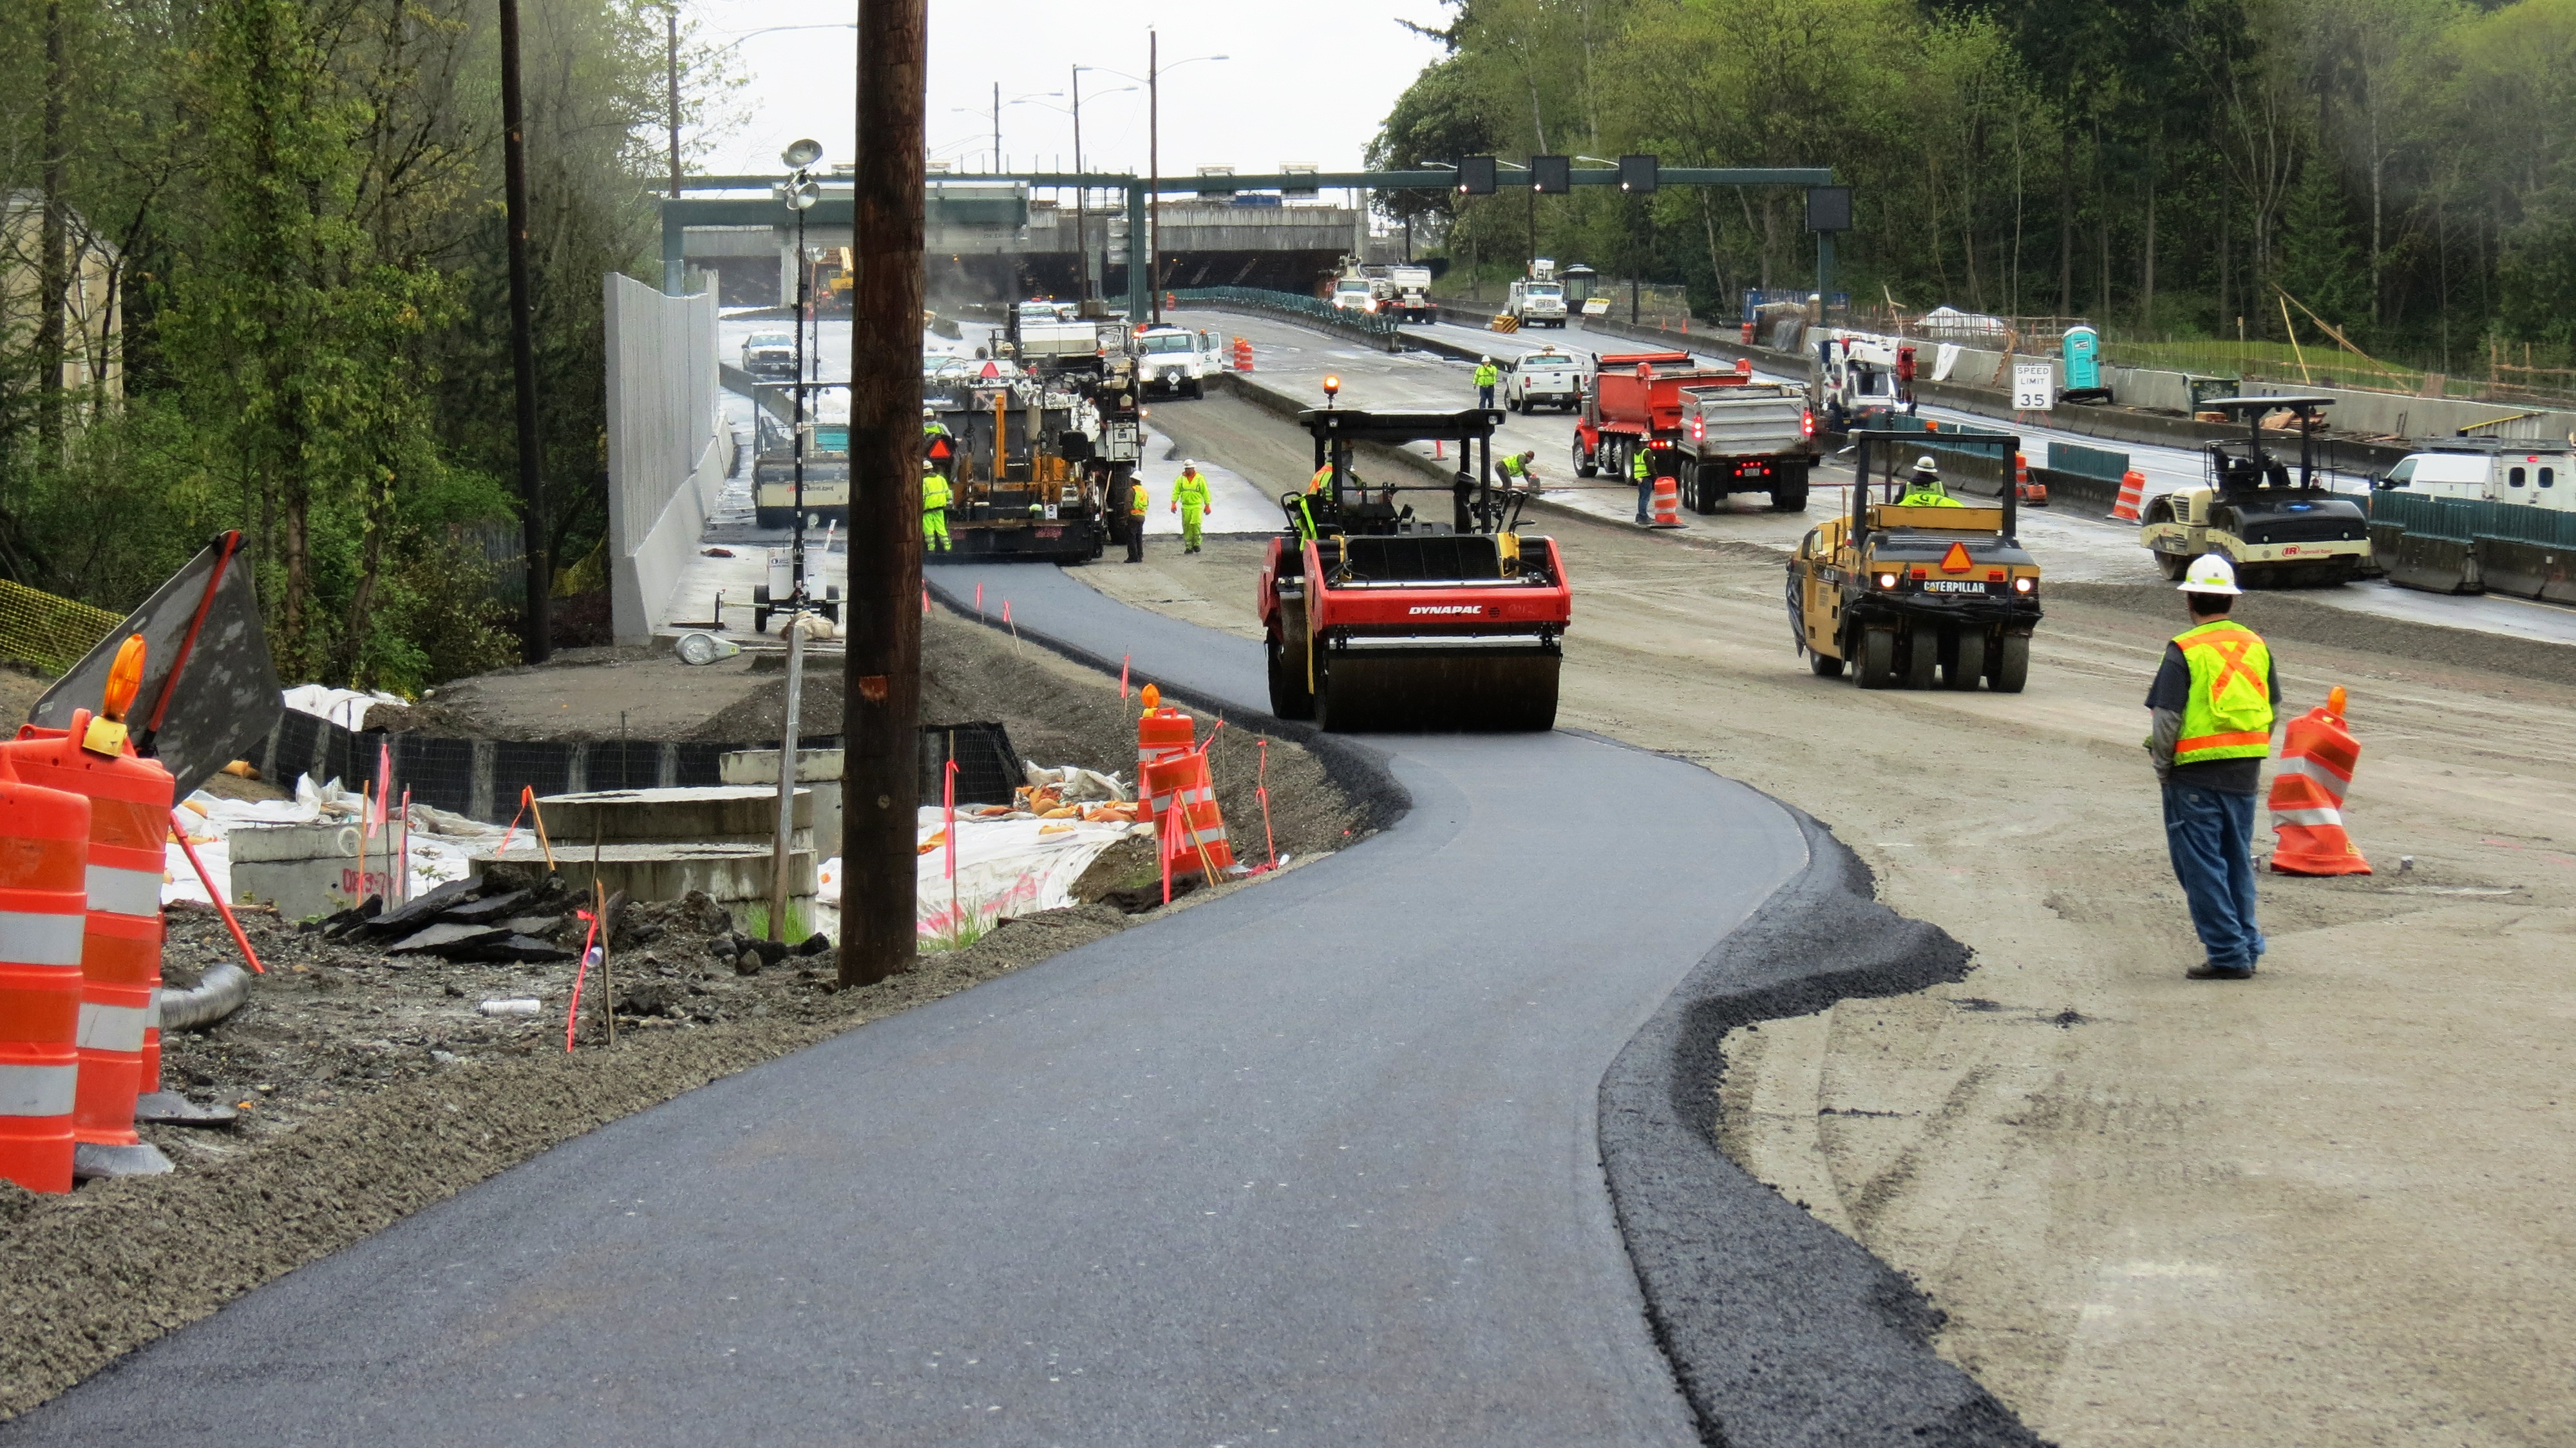 Photo via WSDOT/Flickr httpswww.flickr.com/photos/wsdot/8670279118